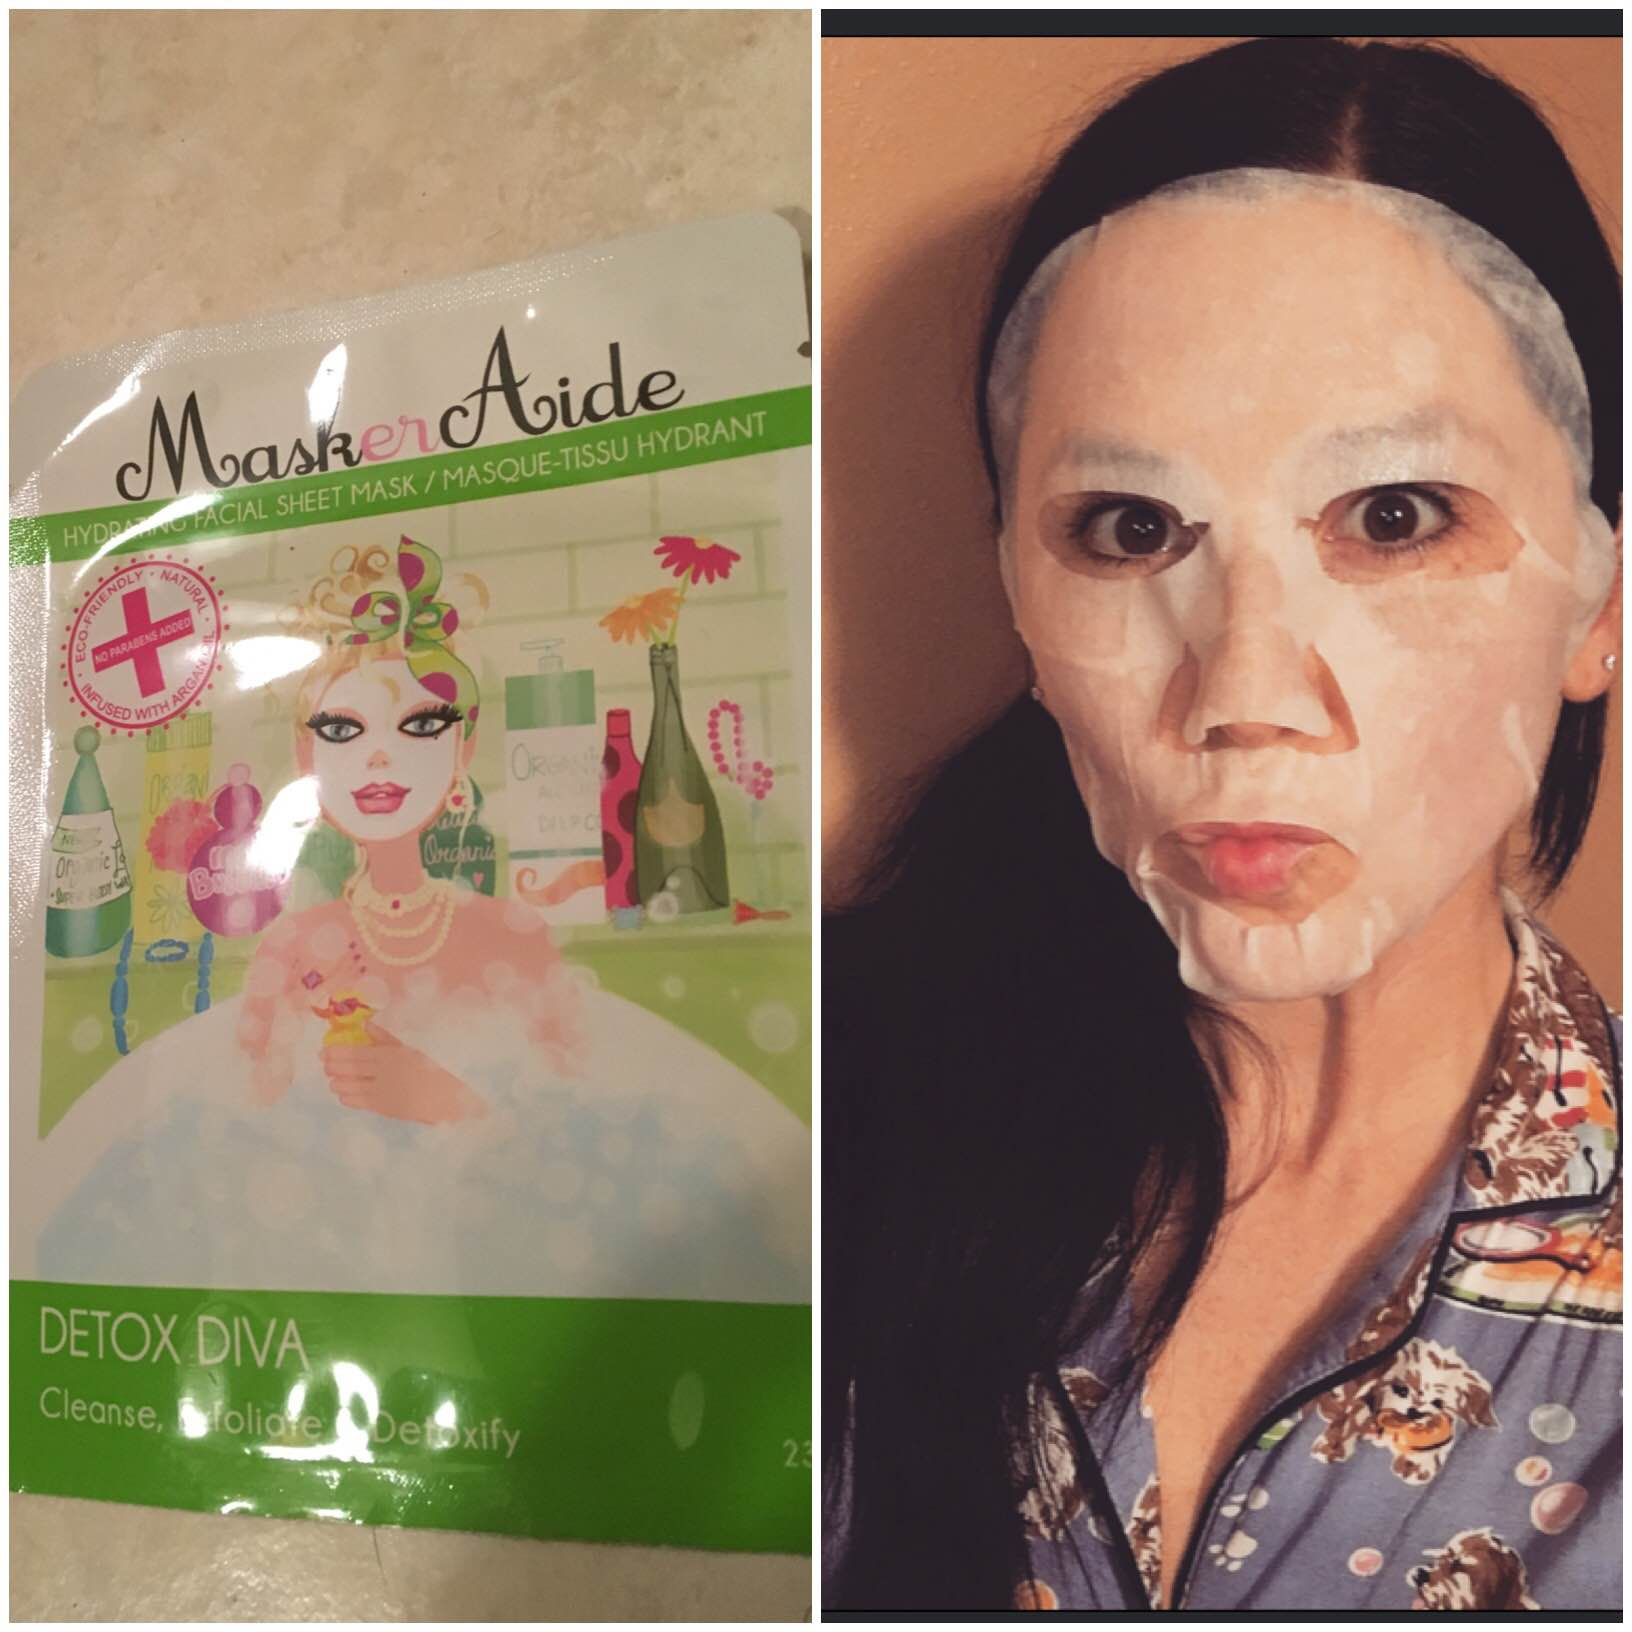 The things we do for beauty! Although this may look a little silly it felt amazing. After about 20minutes of relaxing with my face mask on, my skin felt hydrated, refreshed, and appeared to be glowing!